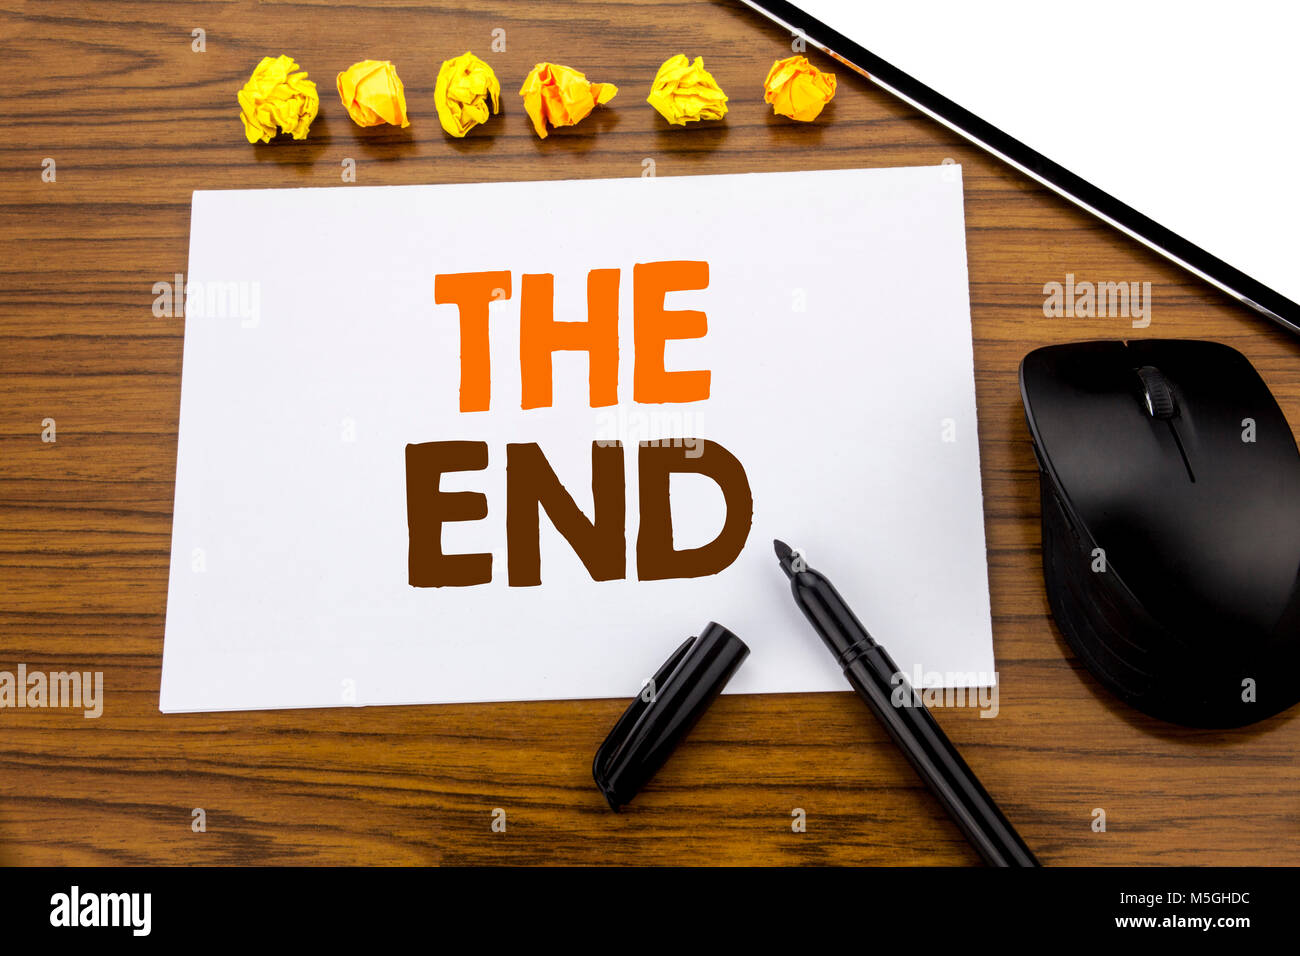 Conceptual hand writing text showing The End. Business concept for End Finish Close written on sticky note paper - Stock Image